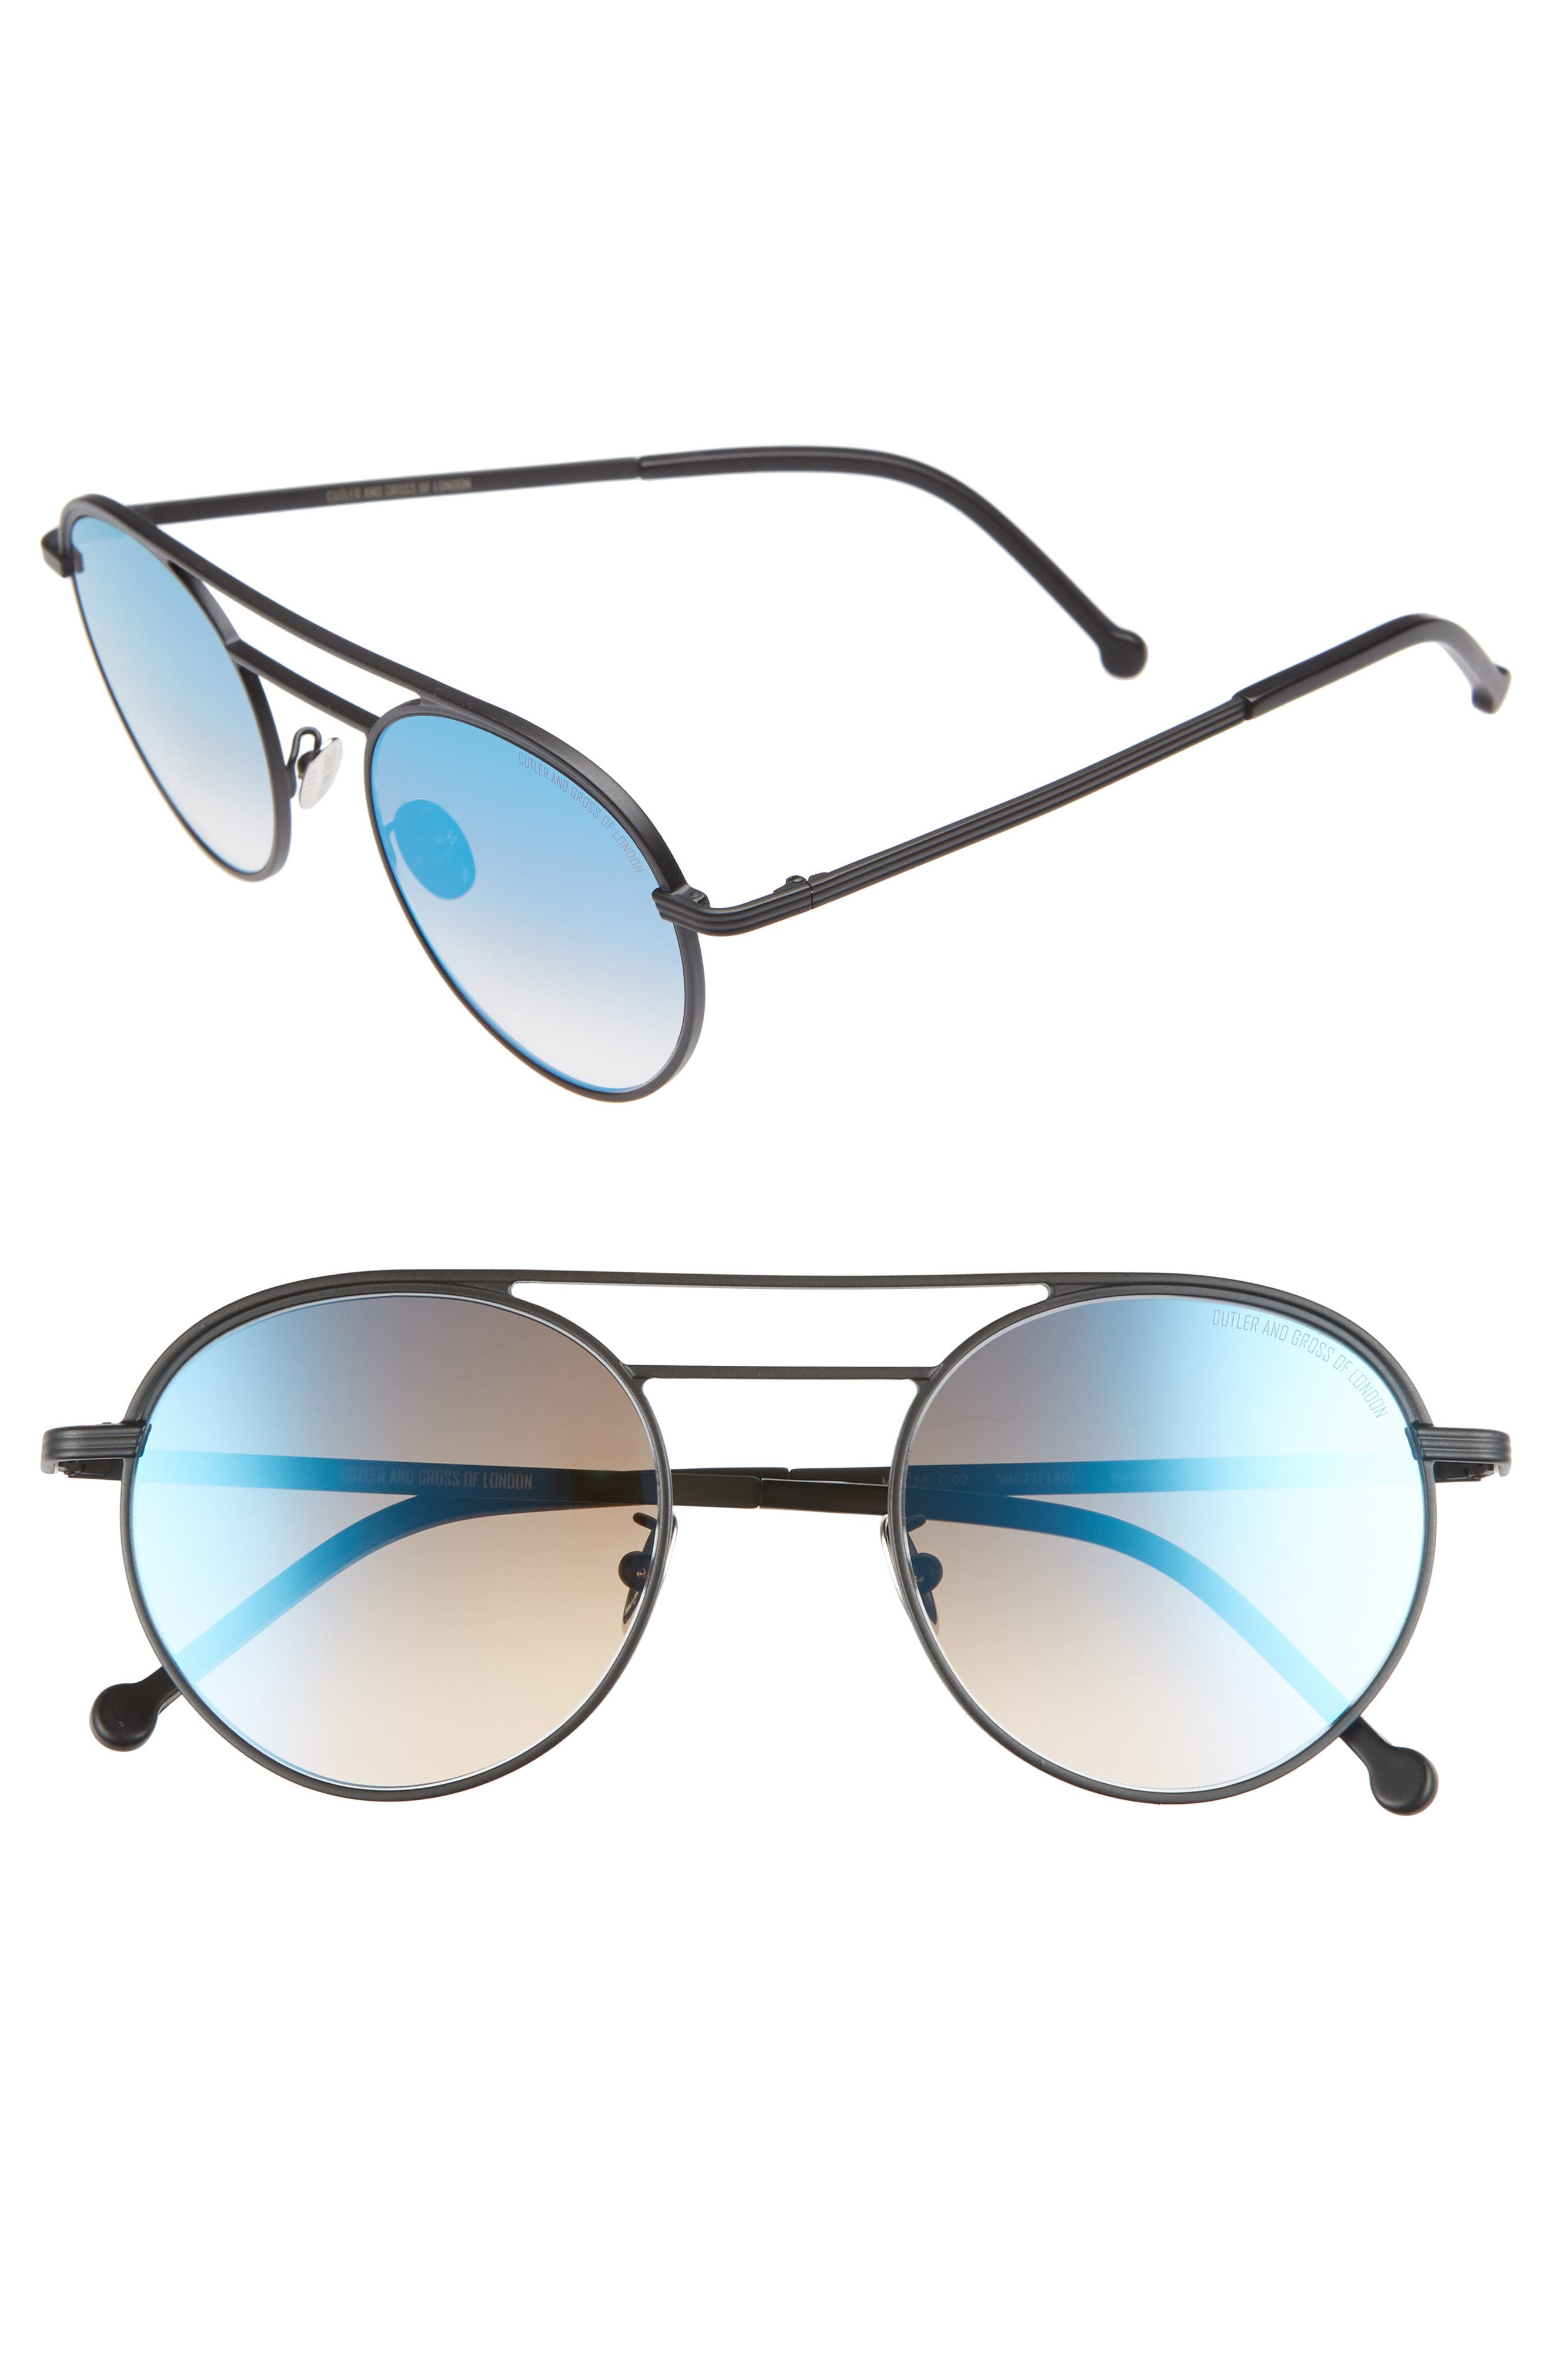 CUTLER AND GROSS 50MM POLARIZED ROUND SUNGLASSES - MATTE BLACK/ BLUE FLASH